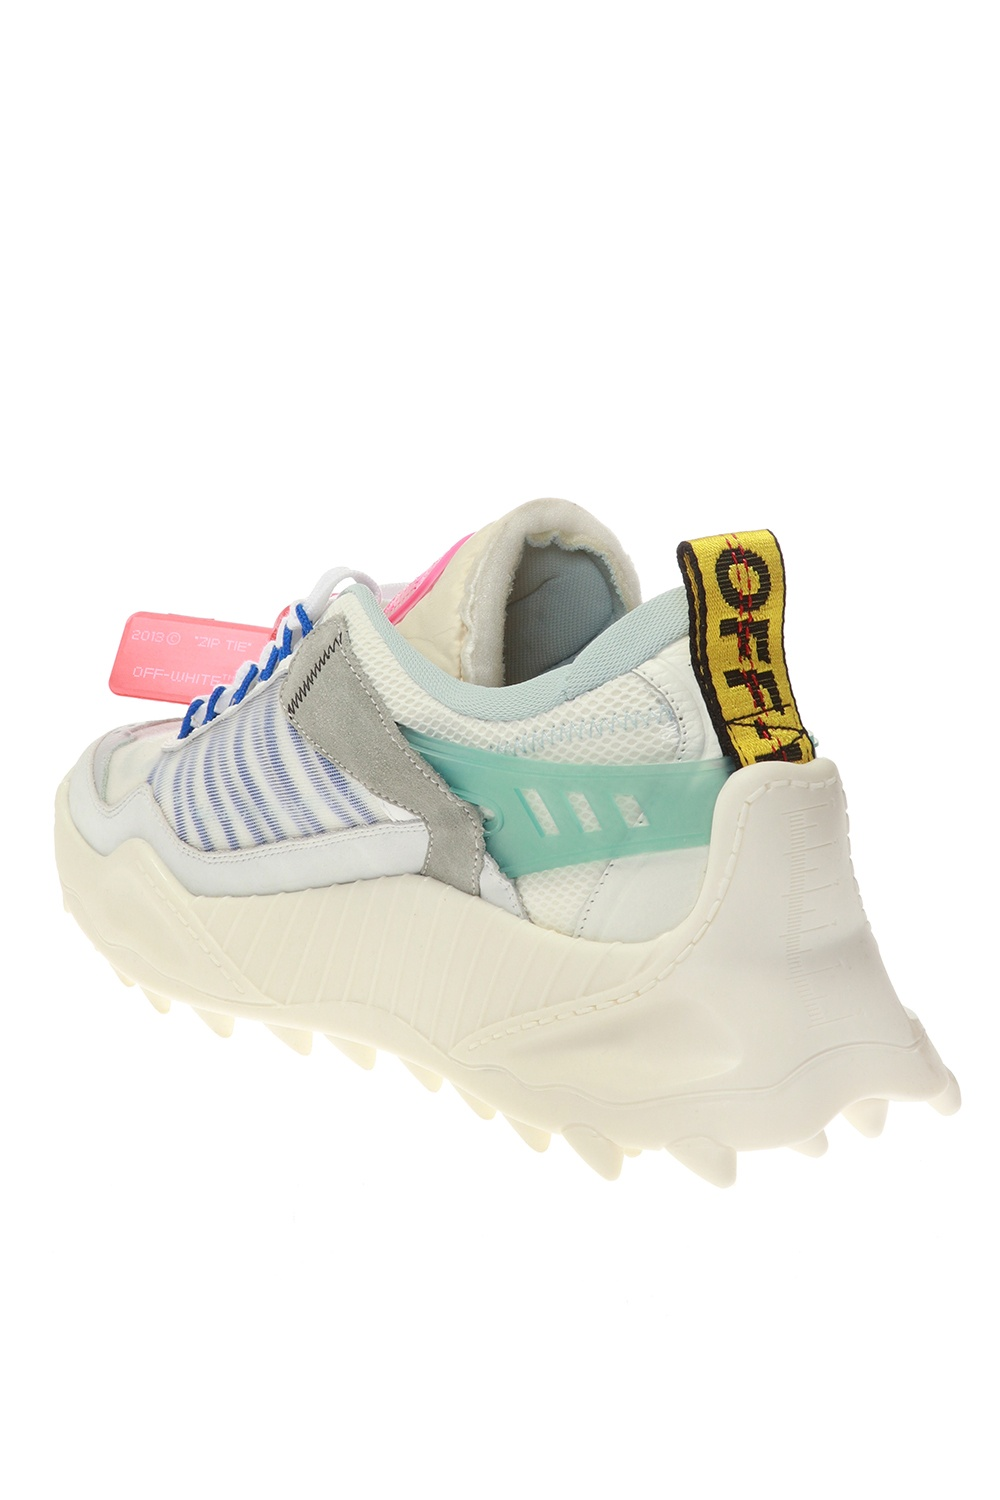 Off-White 'Odsy-1000' sneakers